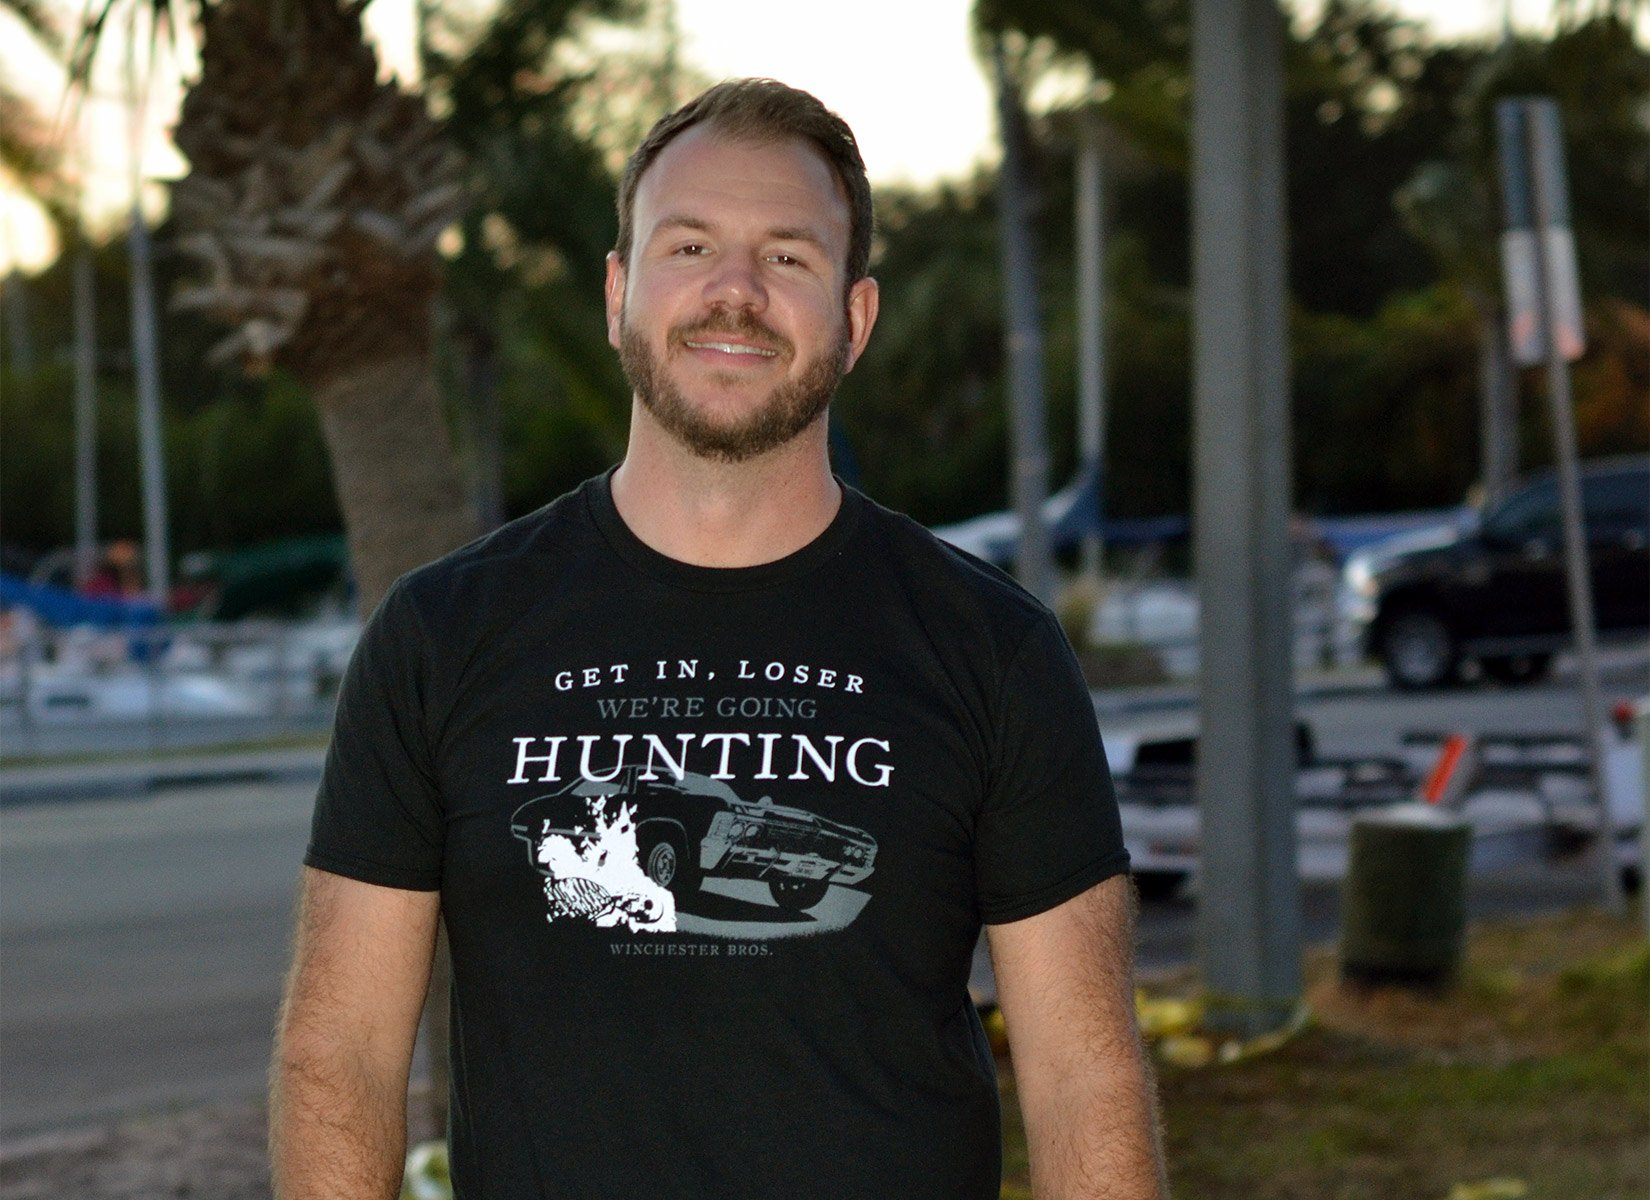 We're Going Hunting on Mens T-Shirt